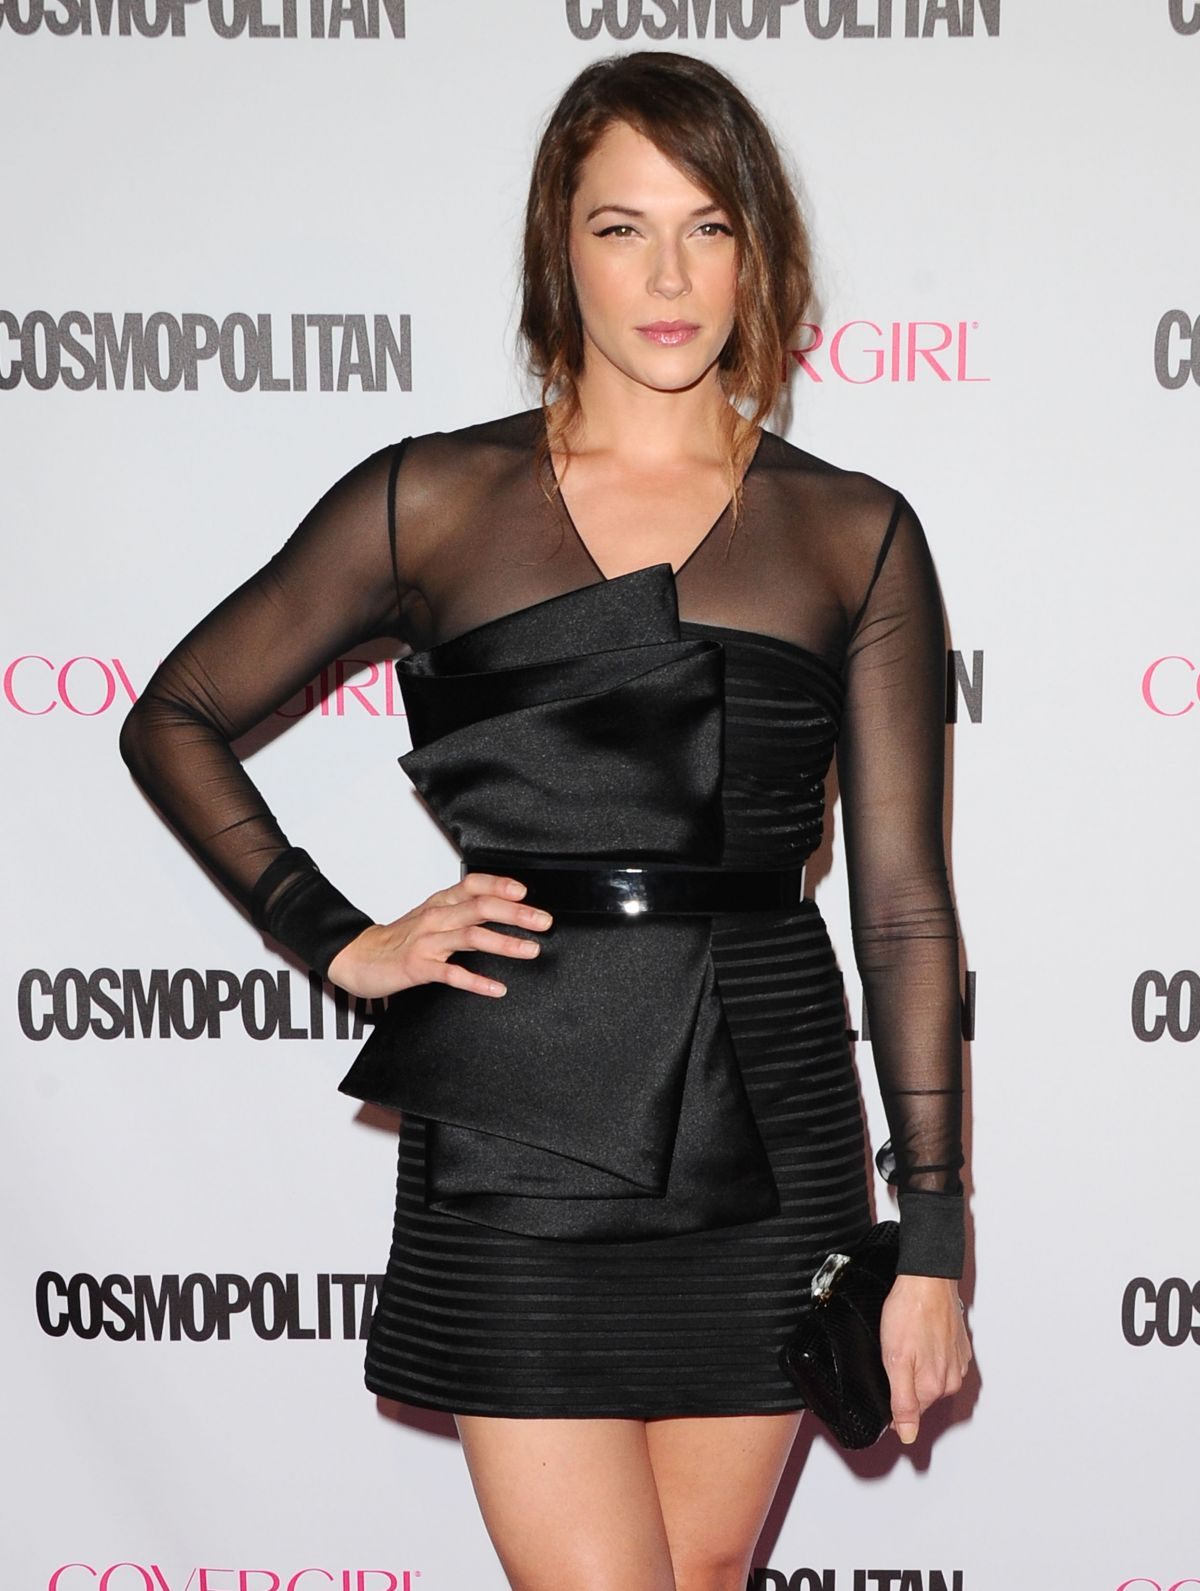 AMANDA RIGHETTI at Cosmopolitan's 50th Birthday Celebration in West Hollywood 10/12/2015